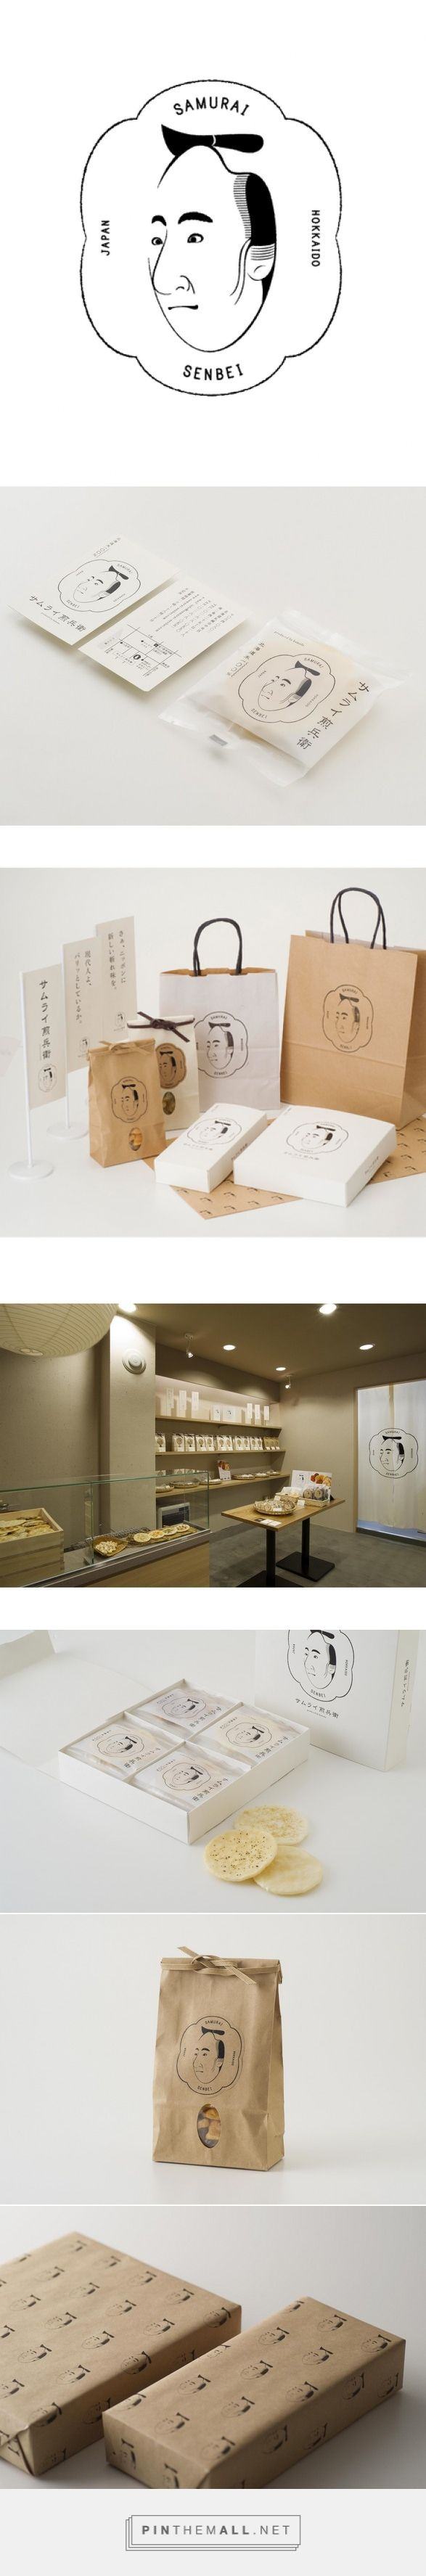 サムライ煎兵衛 - エイプリル curated by Packaging Diva PD.  Love Samurabi Senbei packaging branding identity.